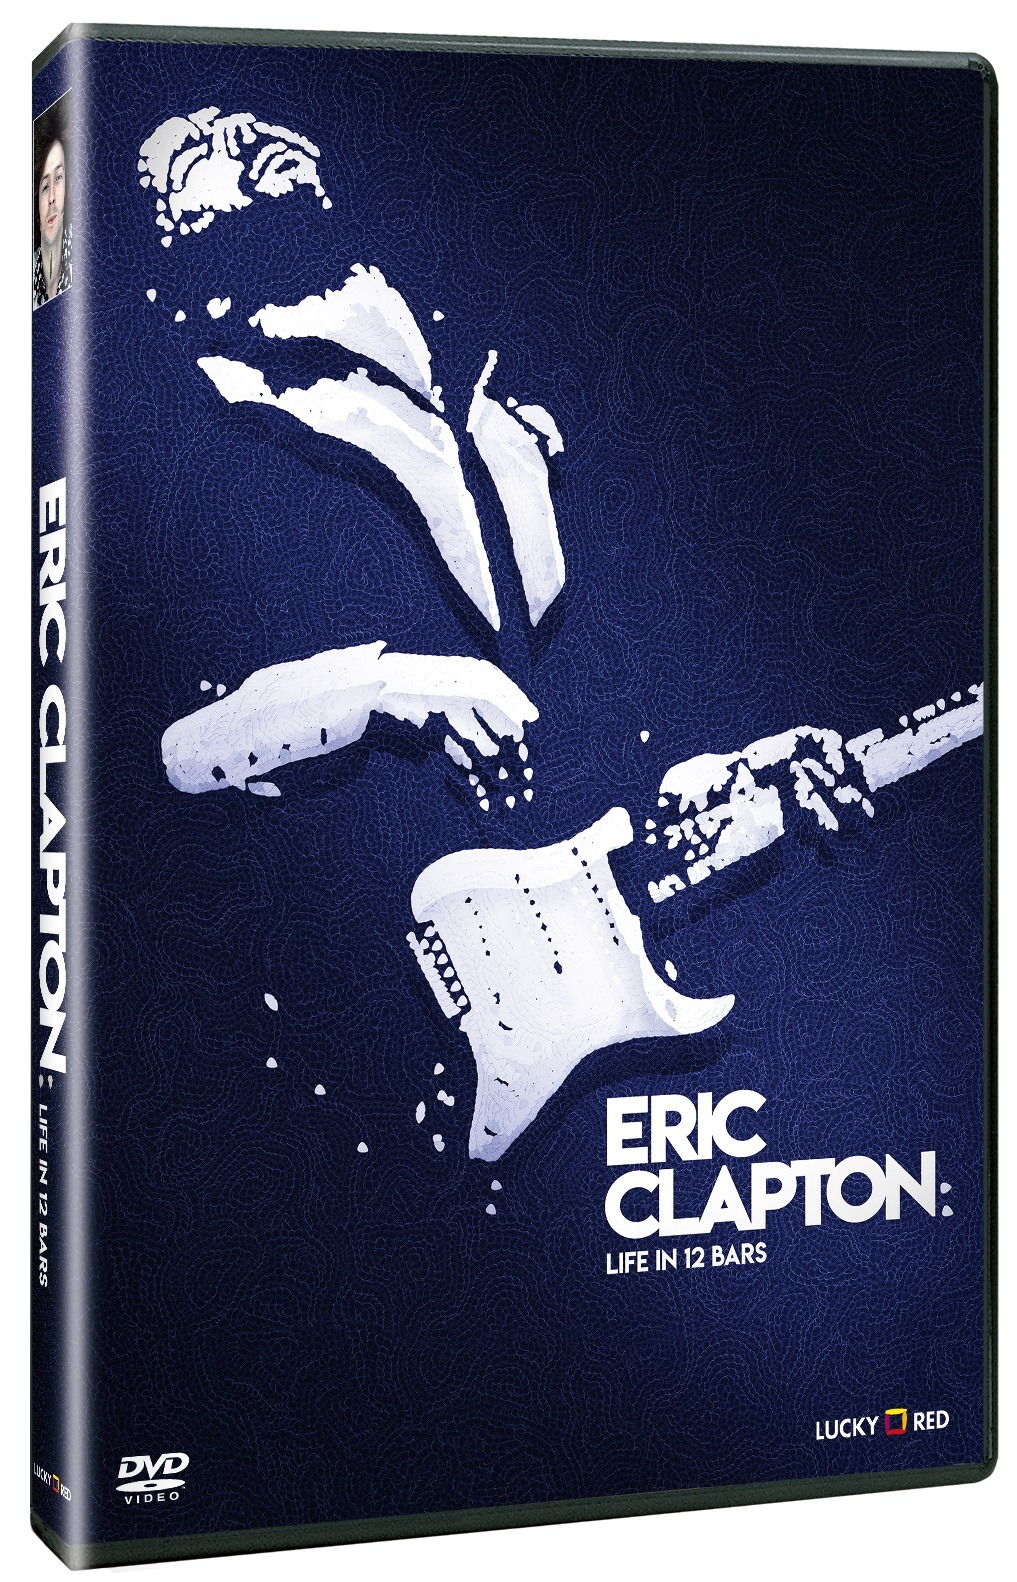 ERIC CLAPTON: LIFE IN 12 BARS - BLU RAY